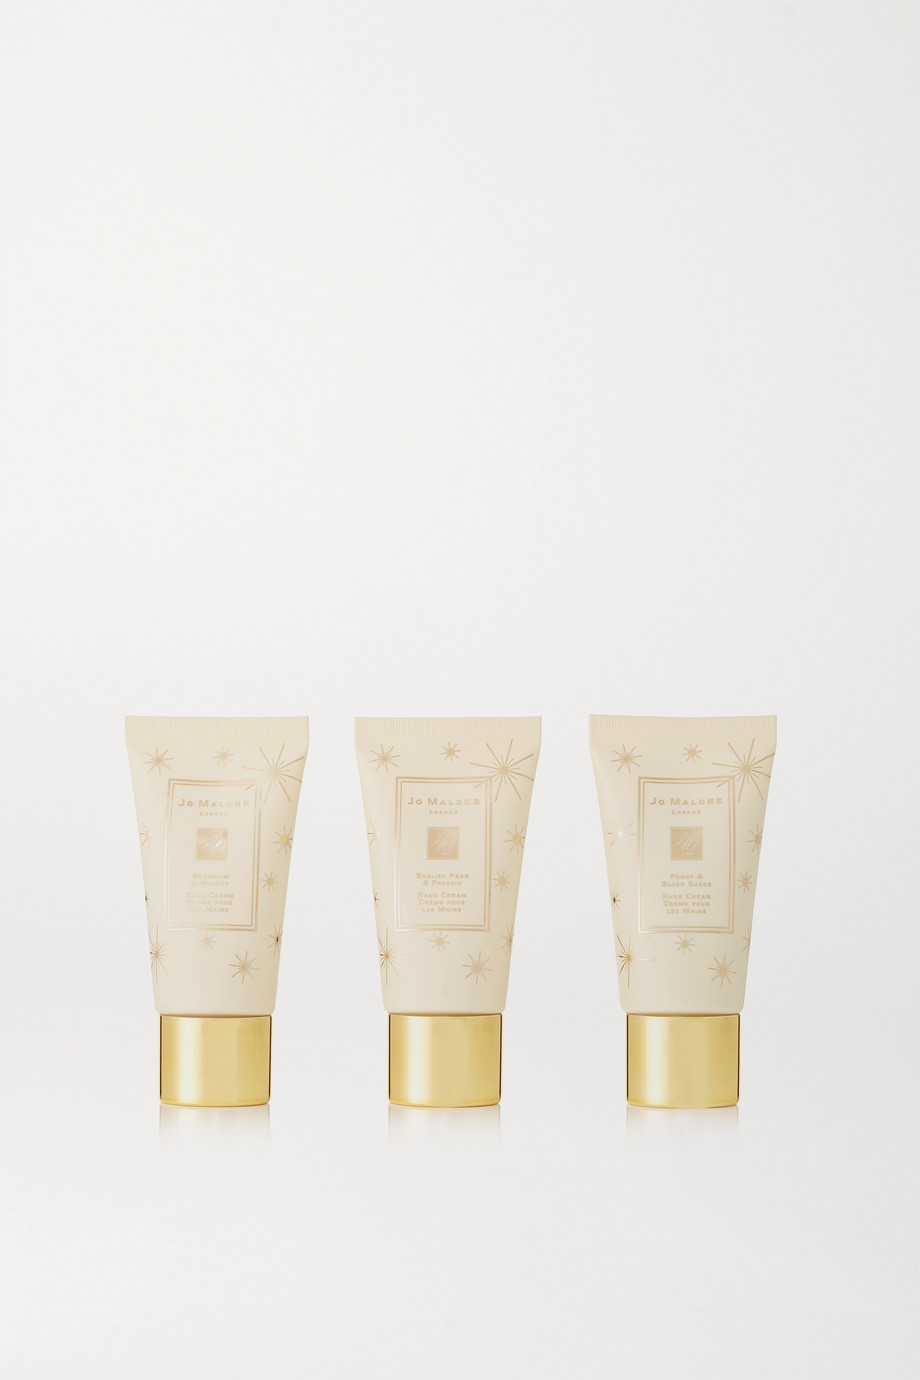 Jo Malone London Hand Cream Collection, 3 x 30ml